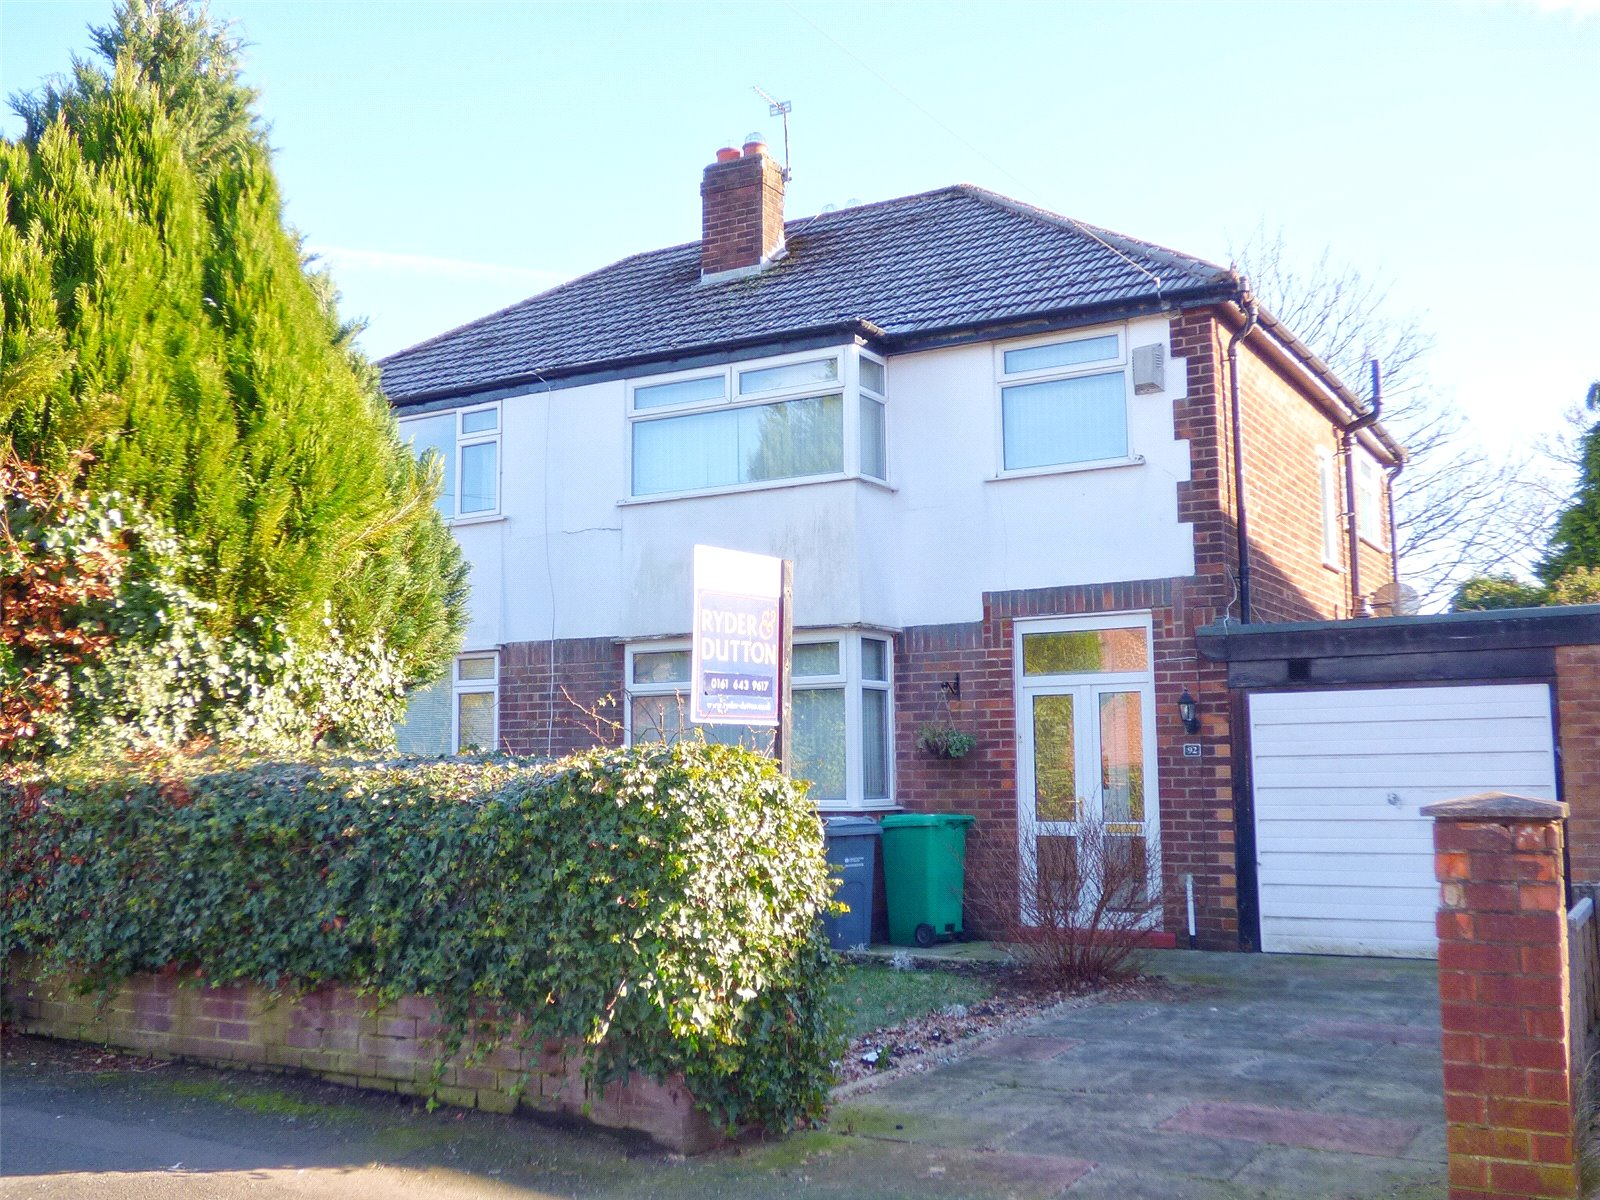 3 Bedrooms Semi Detached House for sale in Hill Lane, Blackley, Manchester, M9